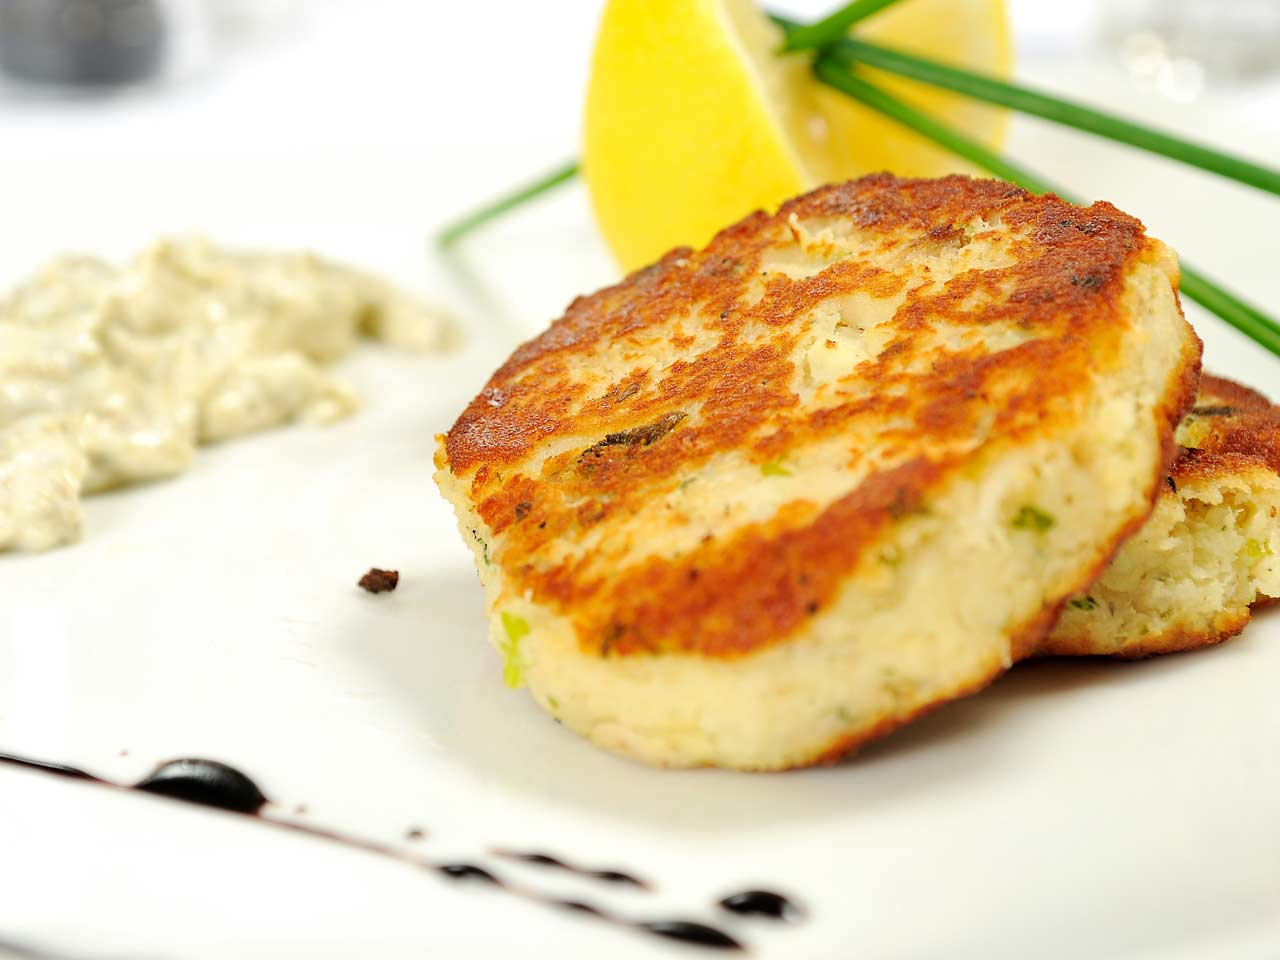 What To Serve With Smoked Haddock Fish Cakes